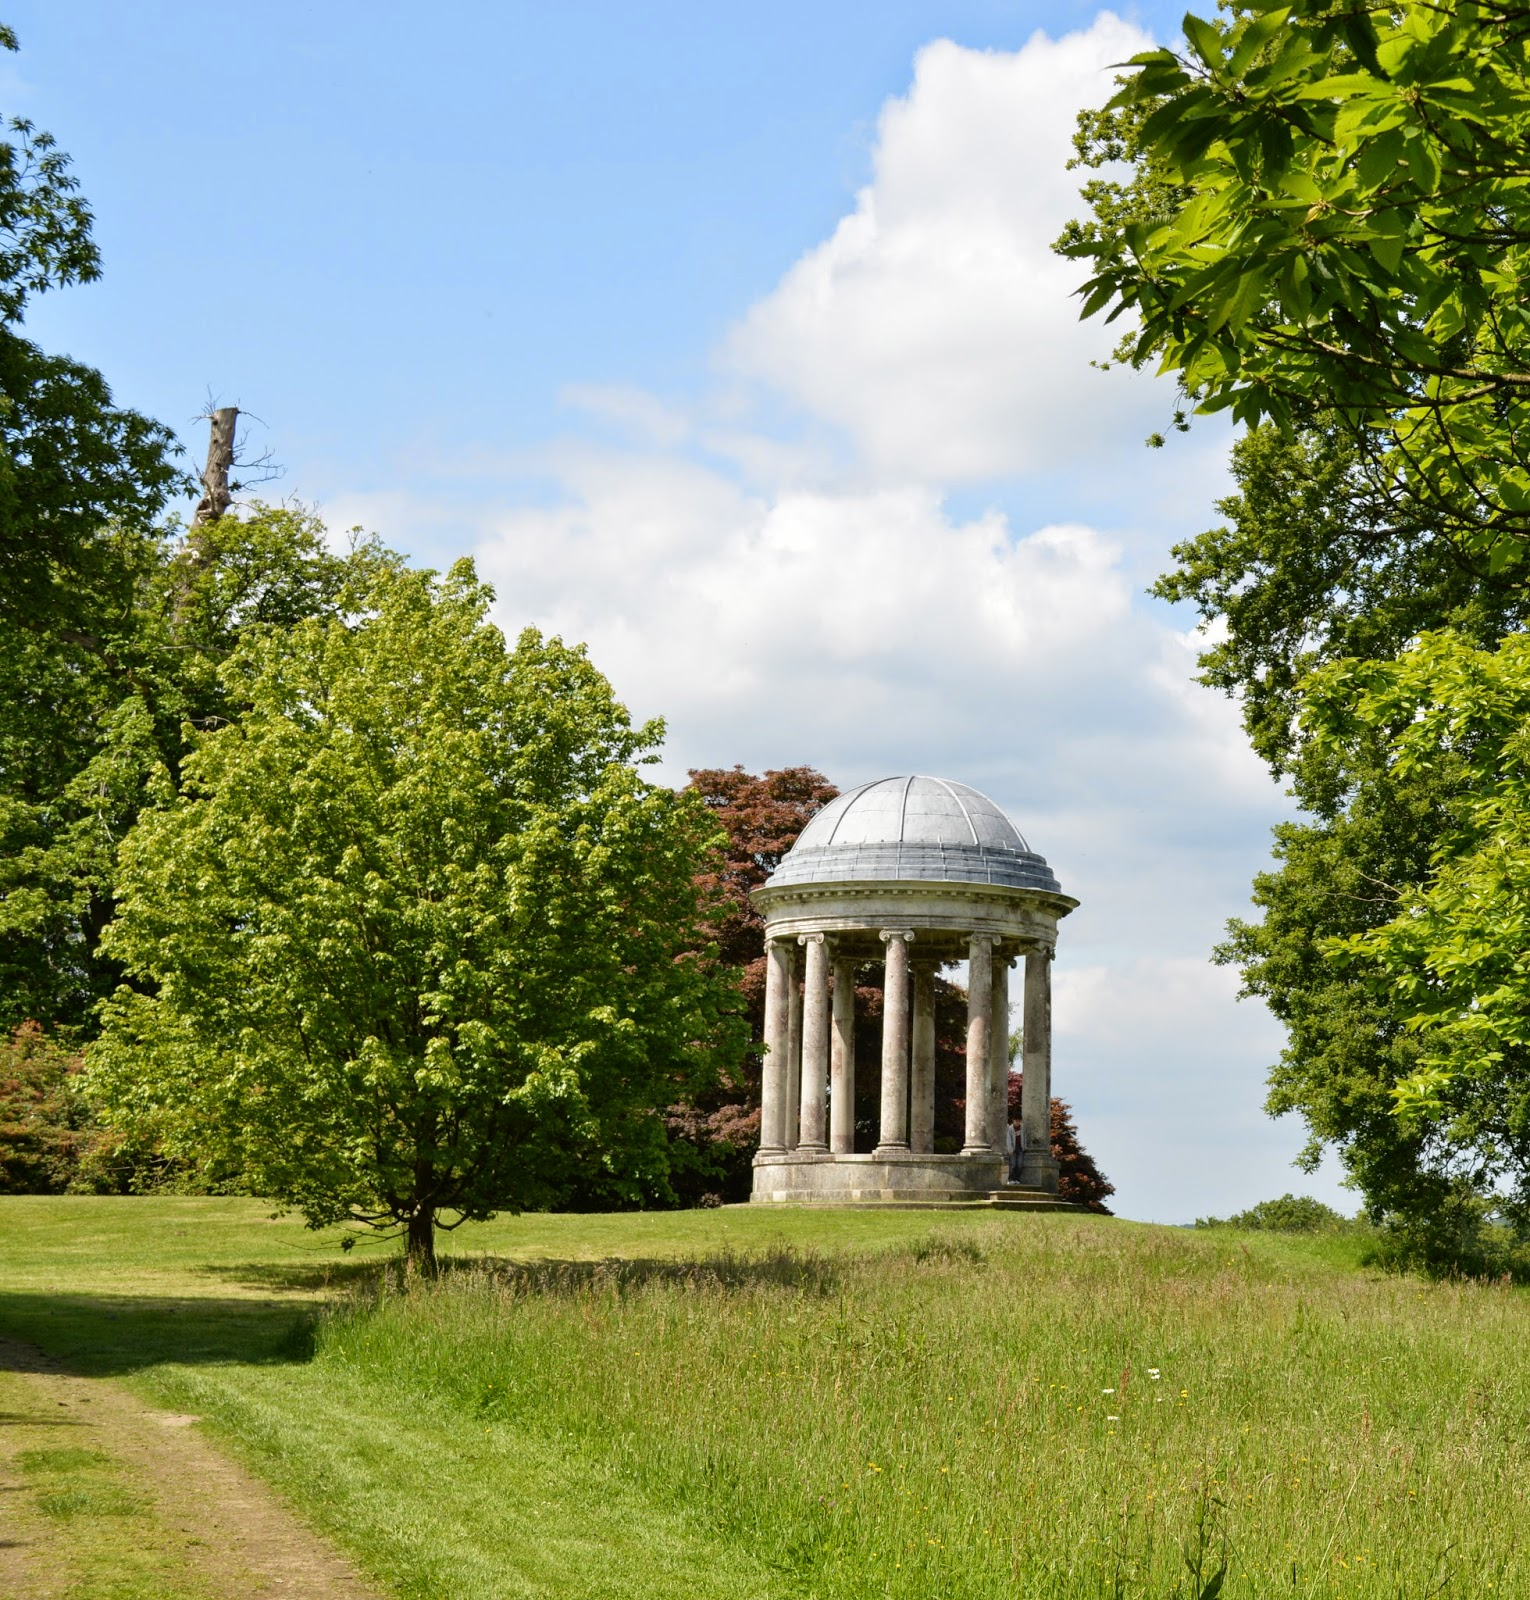 photograph, photo Petworth House and Gardens, review, visit, National Trust, west Sussex, historical home, building, 17th century, property, Percy family, England, ionic rotunda